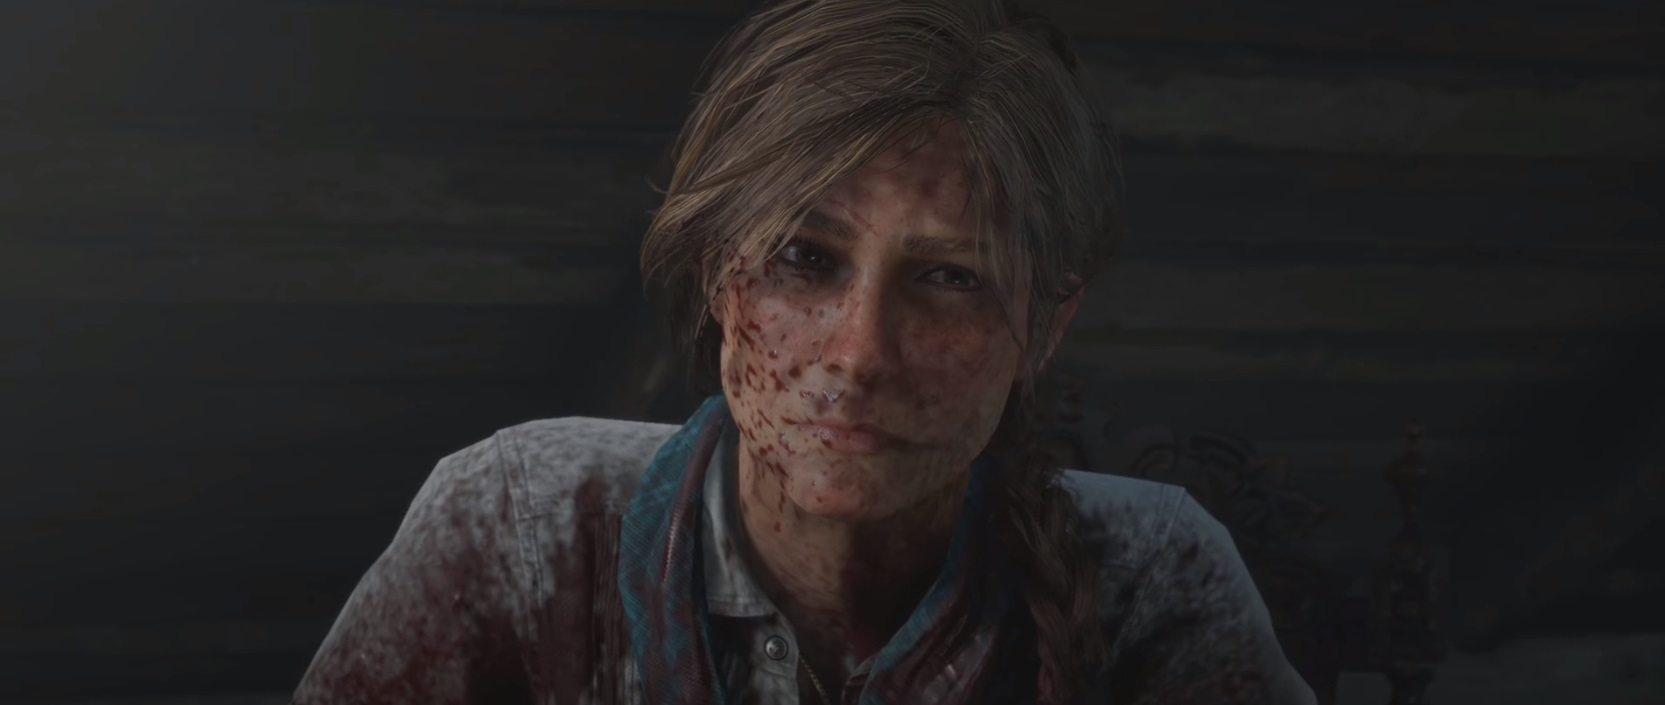 Red-Dead-Redemption-2-Spoilers-Shot-06.j